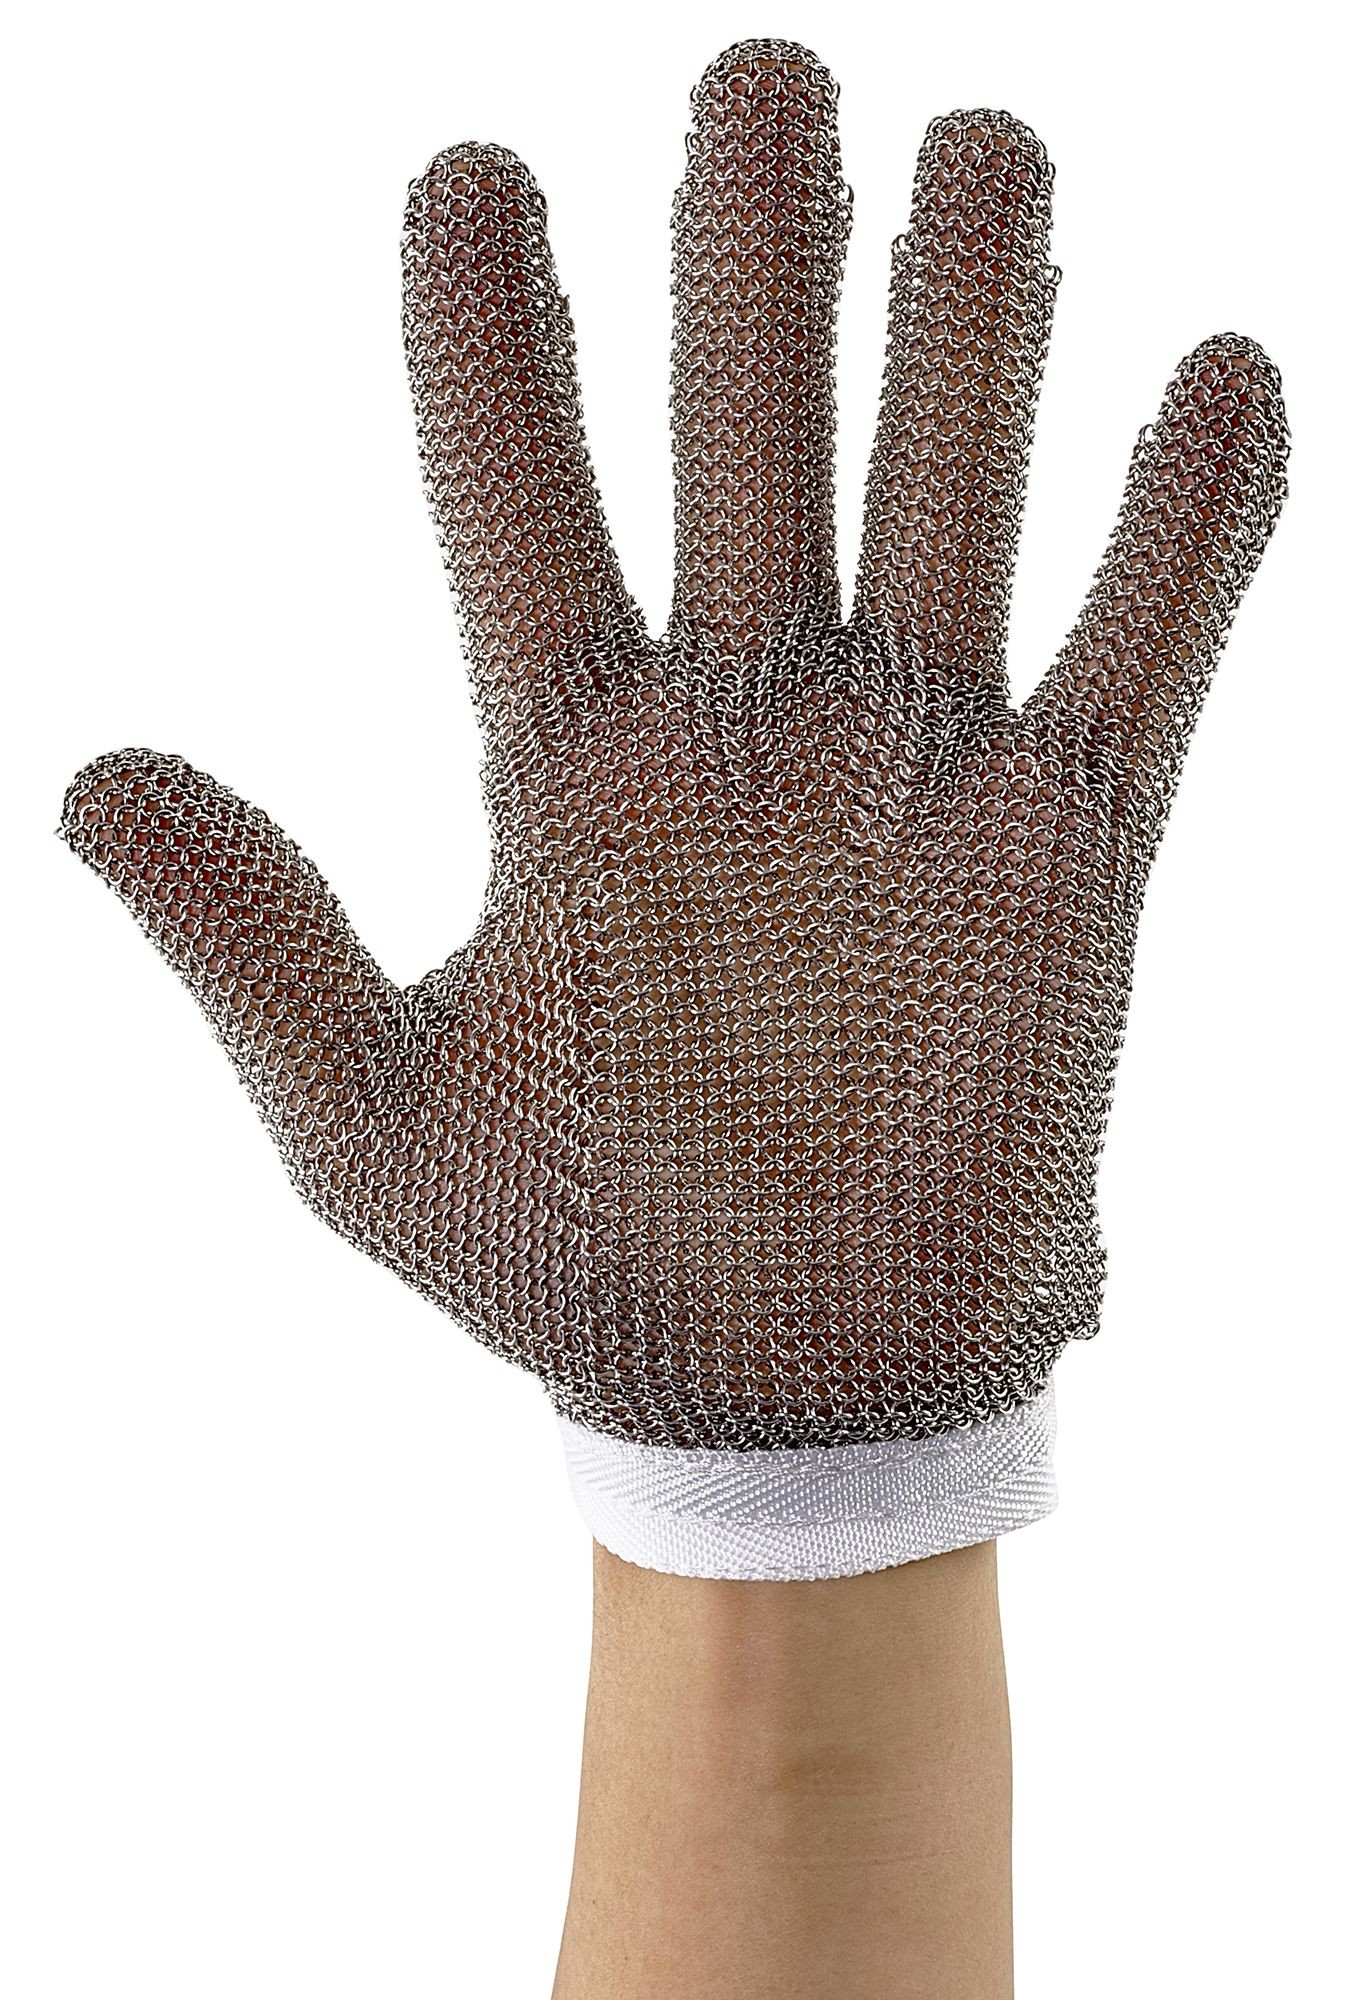 Winco PMG-1S Small Reversible Stainless Steel White Protective Mesh Glove